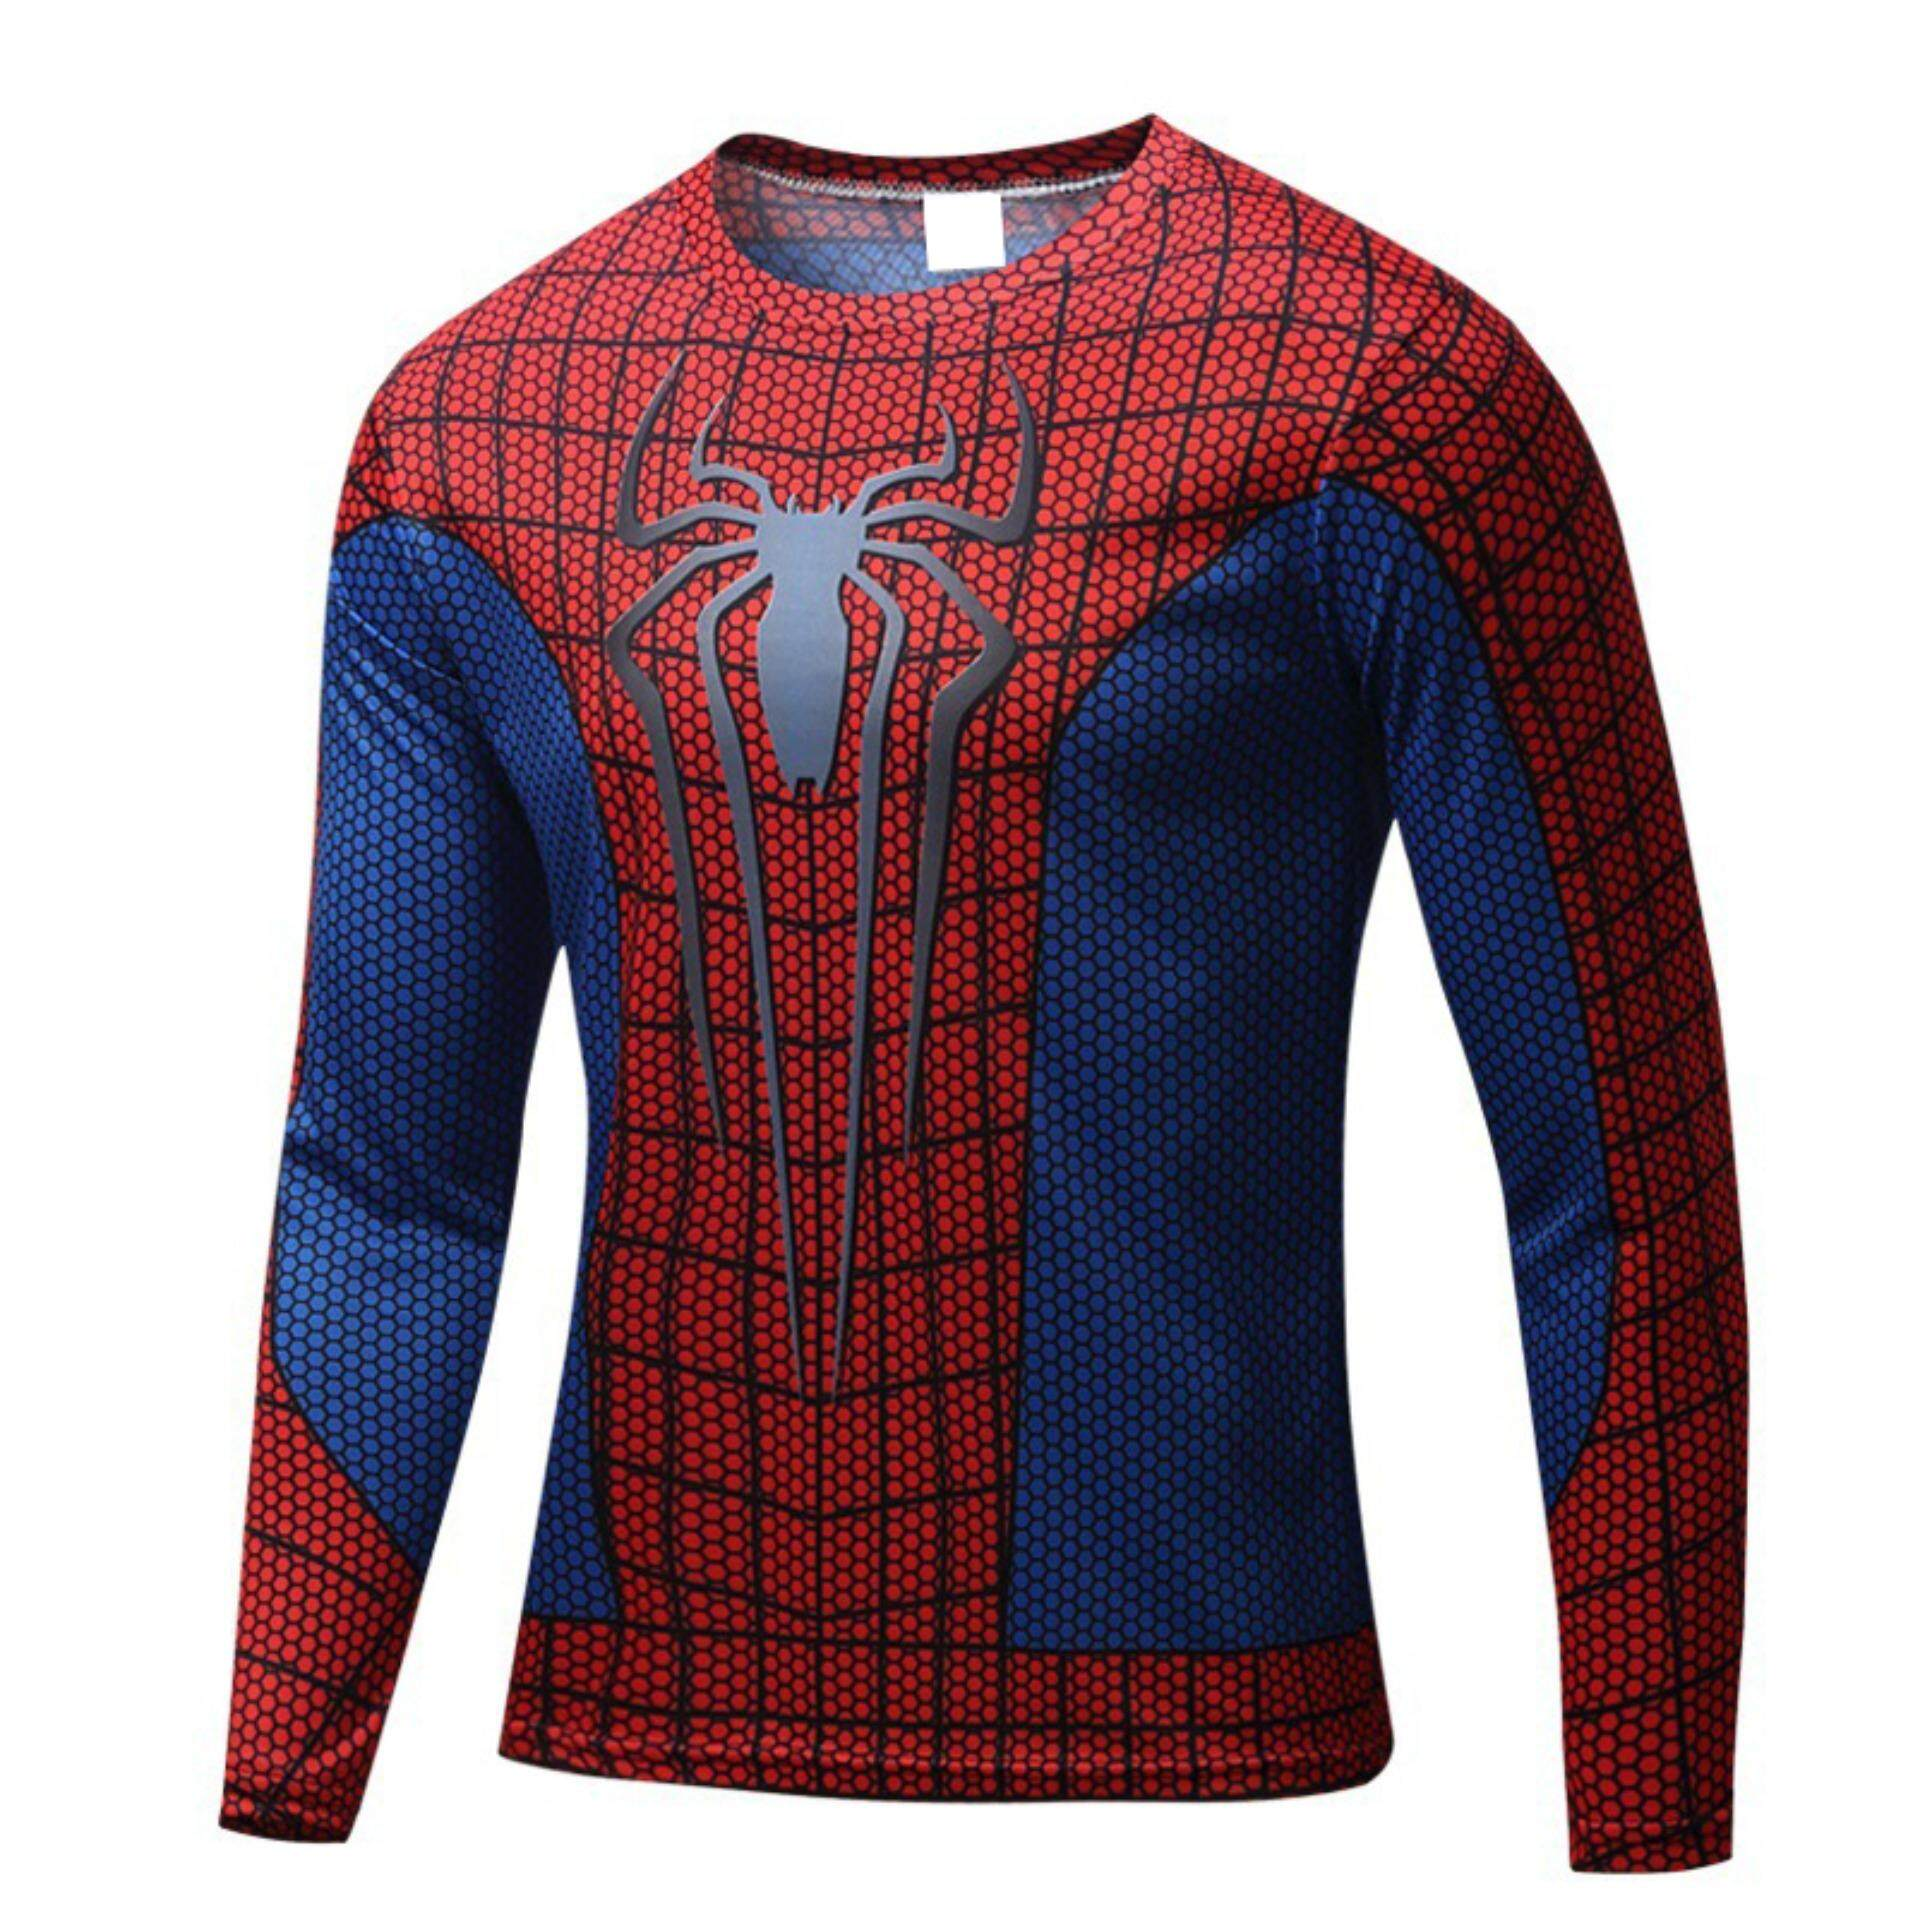 Price Spider Man Avengers Long Sleeve O Neck Unisex Hero Outdoor Sports T Shirts Intl Oem New